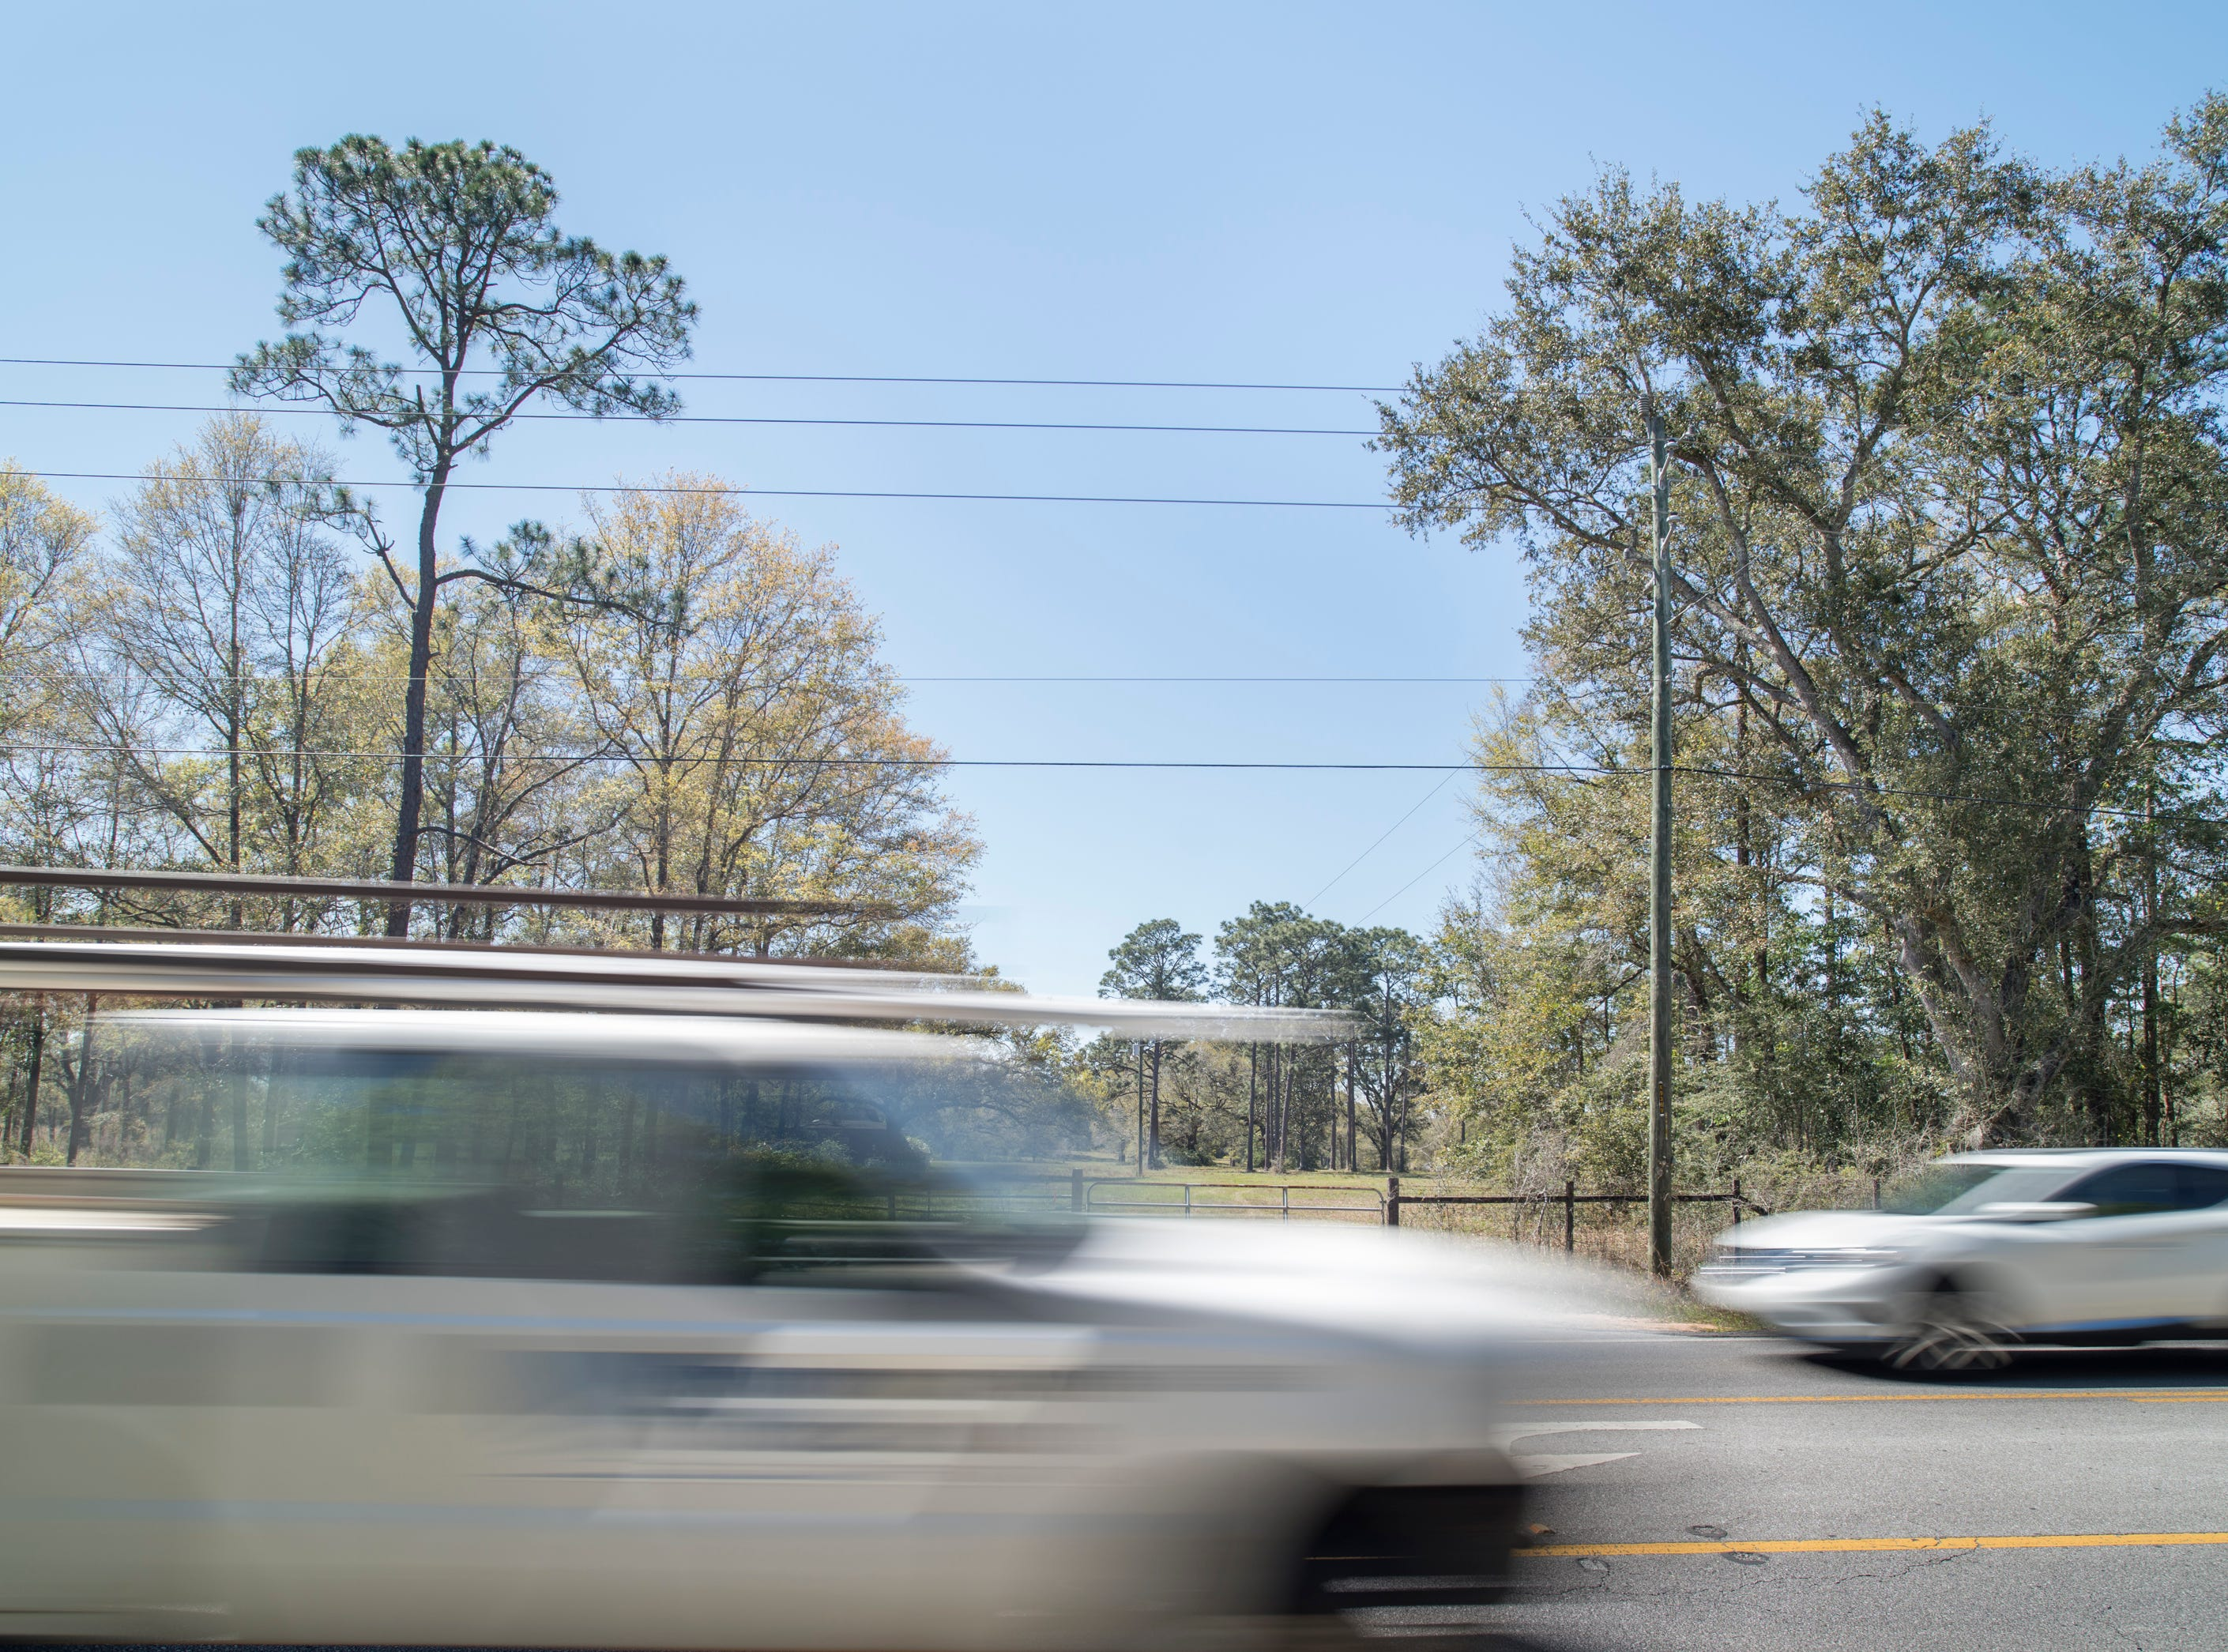 Vehicles drive past the land where a 726-home subdivision along Woodbine Road is proposed in Pace on Friday, March 22, 2019.  Phil Hoffman, the president of Santa Rosa Voters Against Overcrowded Roads and Schools, explains that the county should reinstate an impact fee so that the proposed subdivision, that would substantially worsen traffic that is already bad, would help fund widening of street.